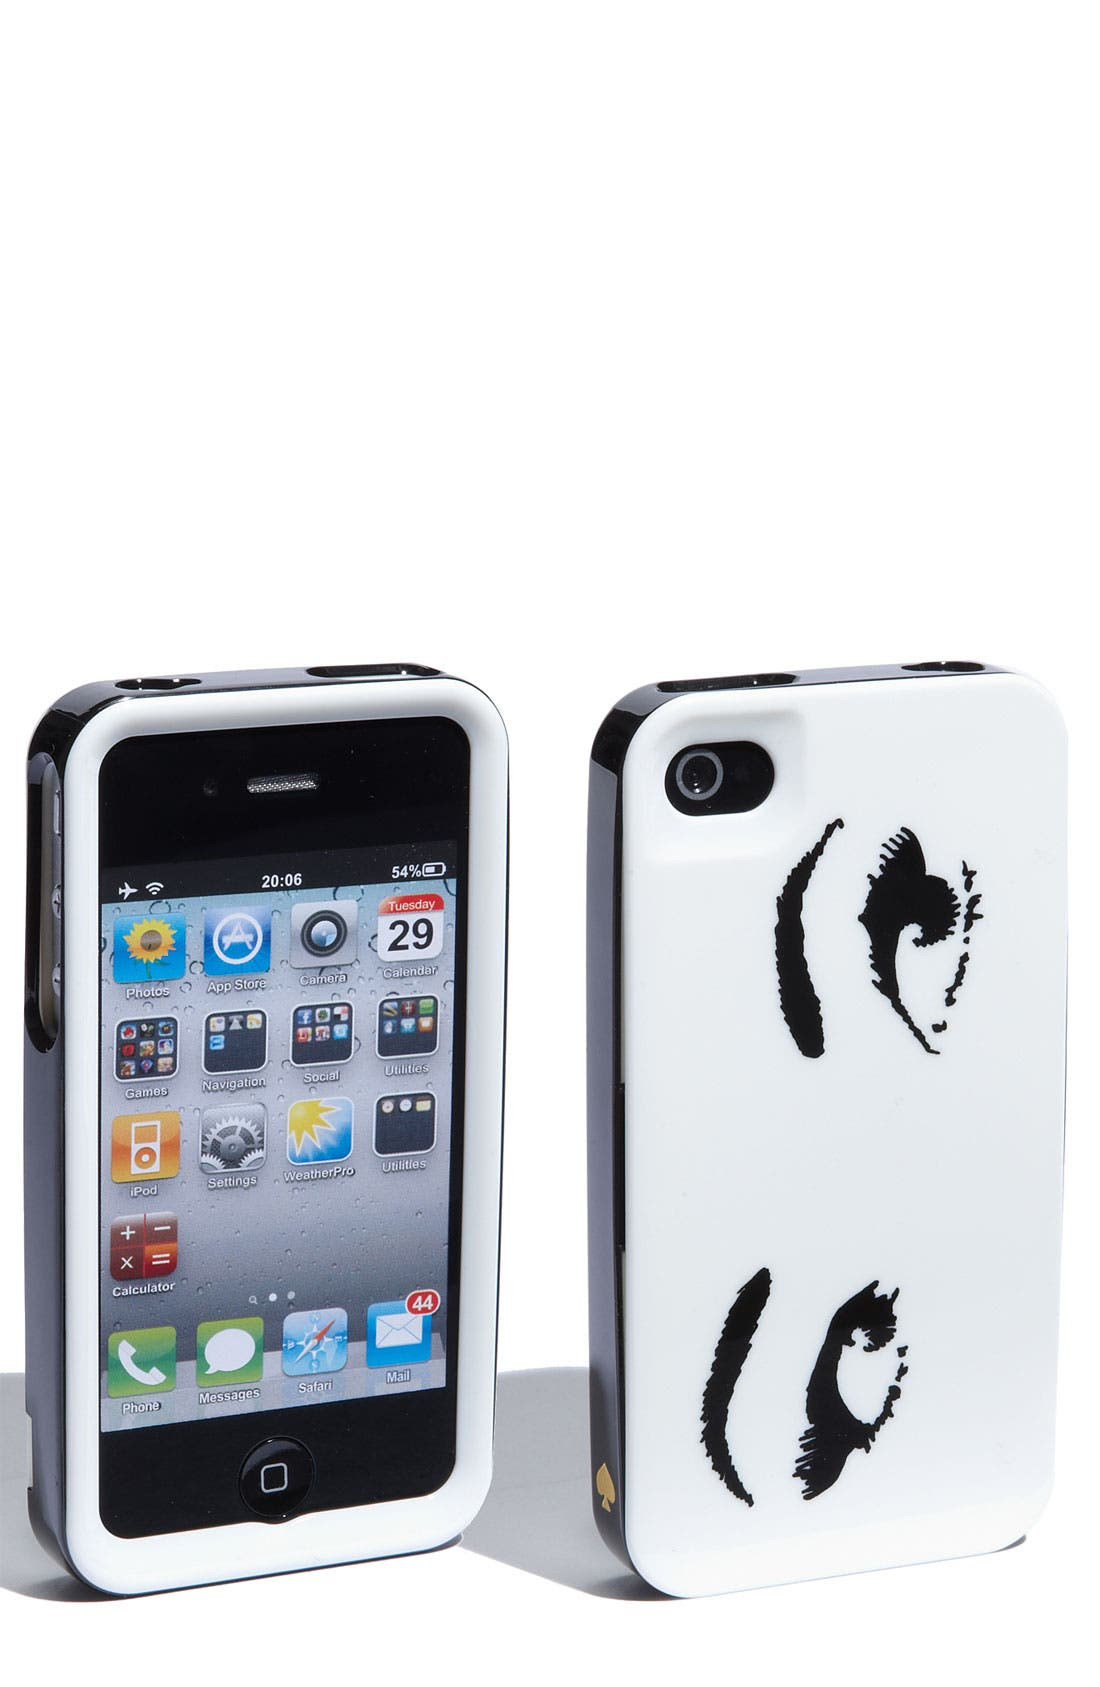 Main Image - kate spade new york 'all eyes' iPhone 4 & 4S case